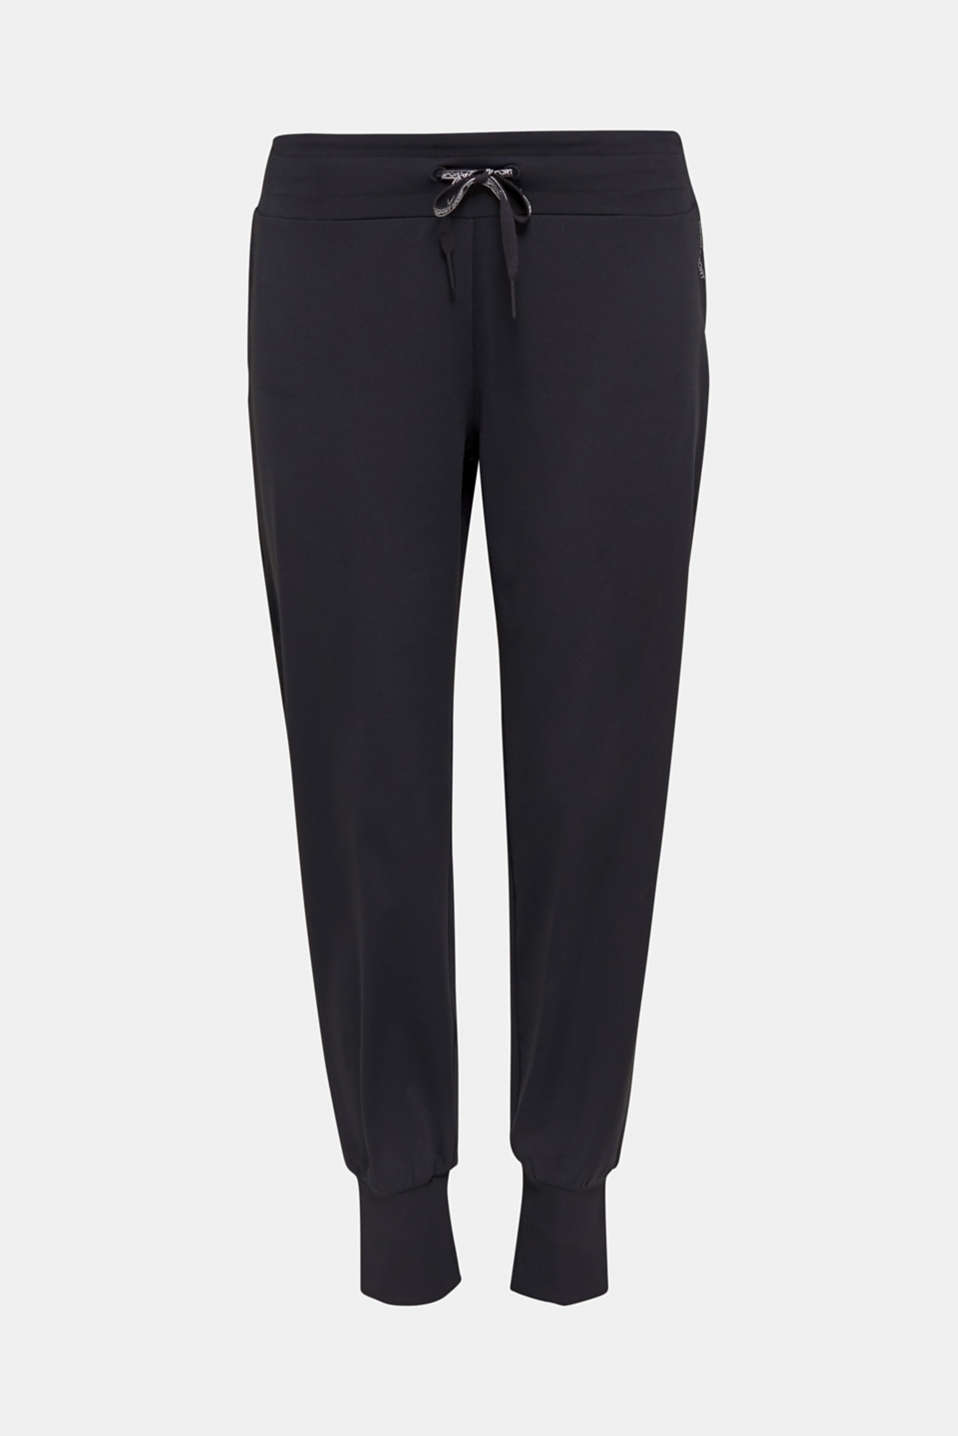 Active trousers with hem cuffs, E-DRY, BLACK, detail image number 6